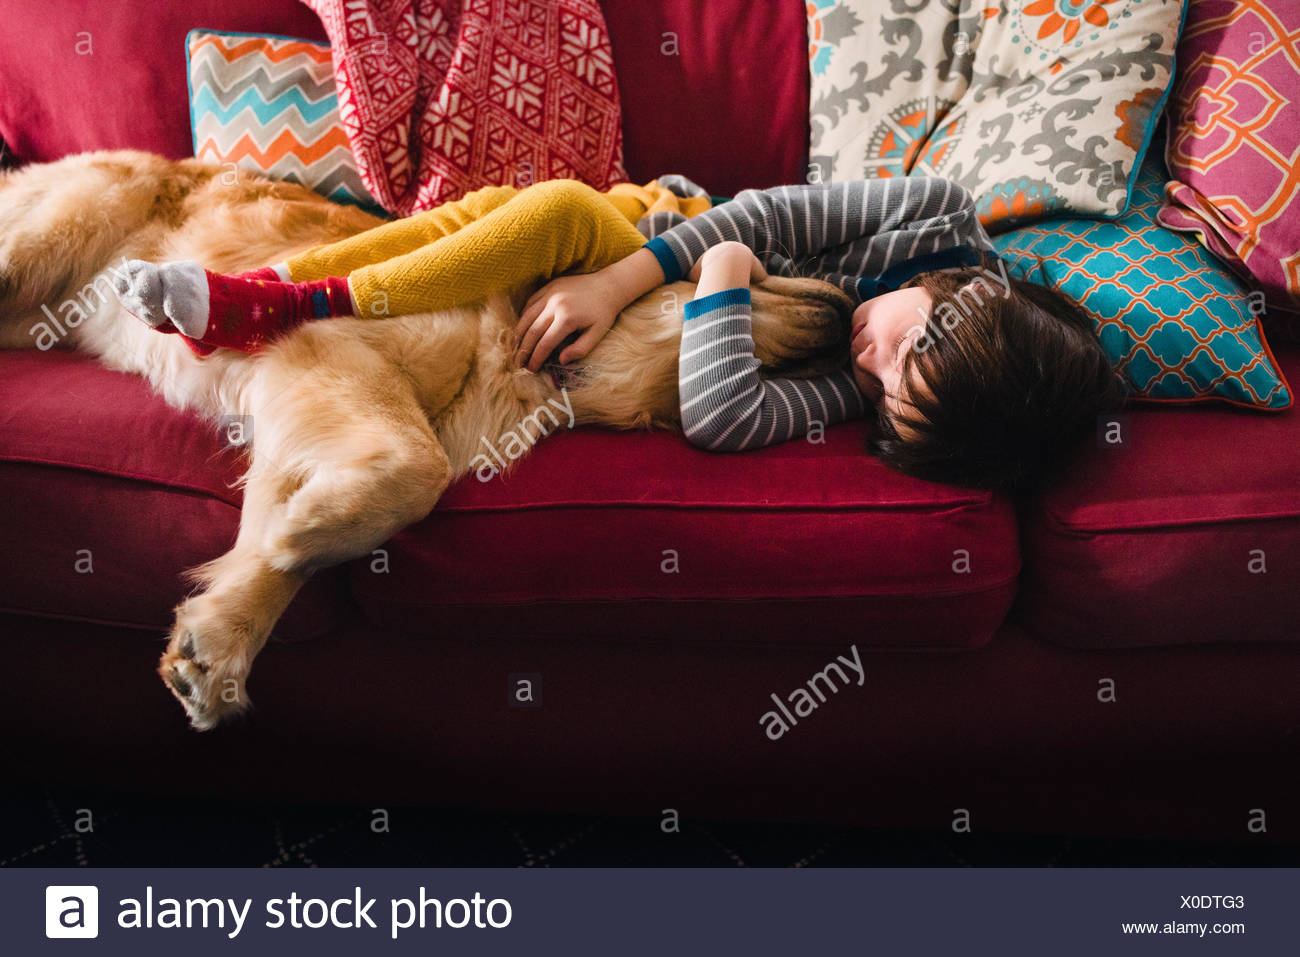 Girl sleeping on couch with golden retriever dog - Stock Image